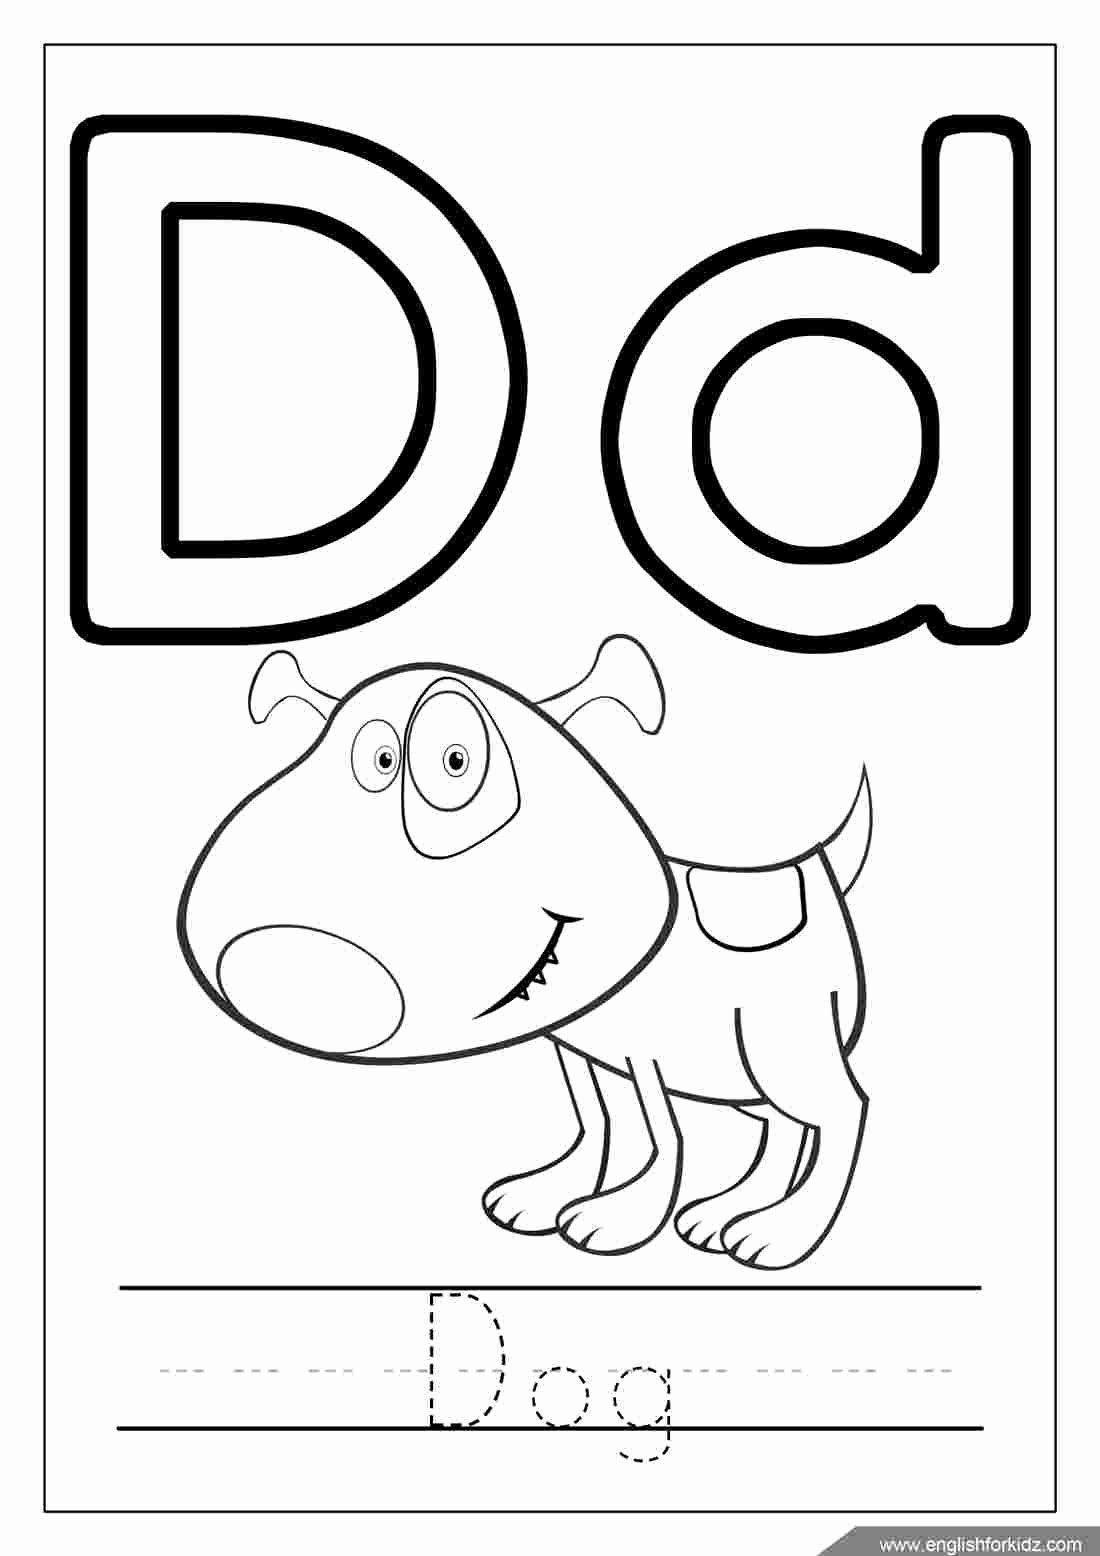 Free Printable Alphabet Coloring Pages New Printable Alphabet Coloring Page Free Printable A In 2020 Alphabet Coloring Pages Abc Coloring Pages Letter A Coloring Pages [ 1556 x 1100 Pixel ]